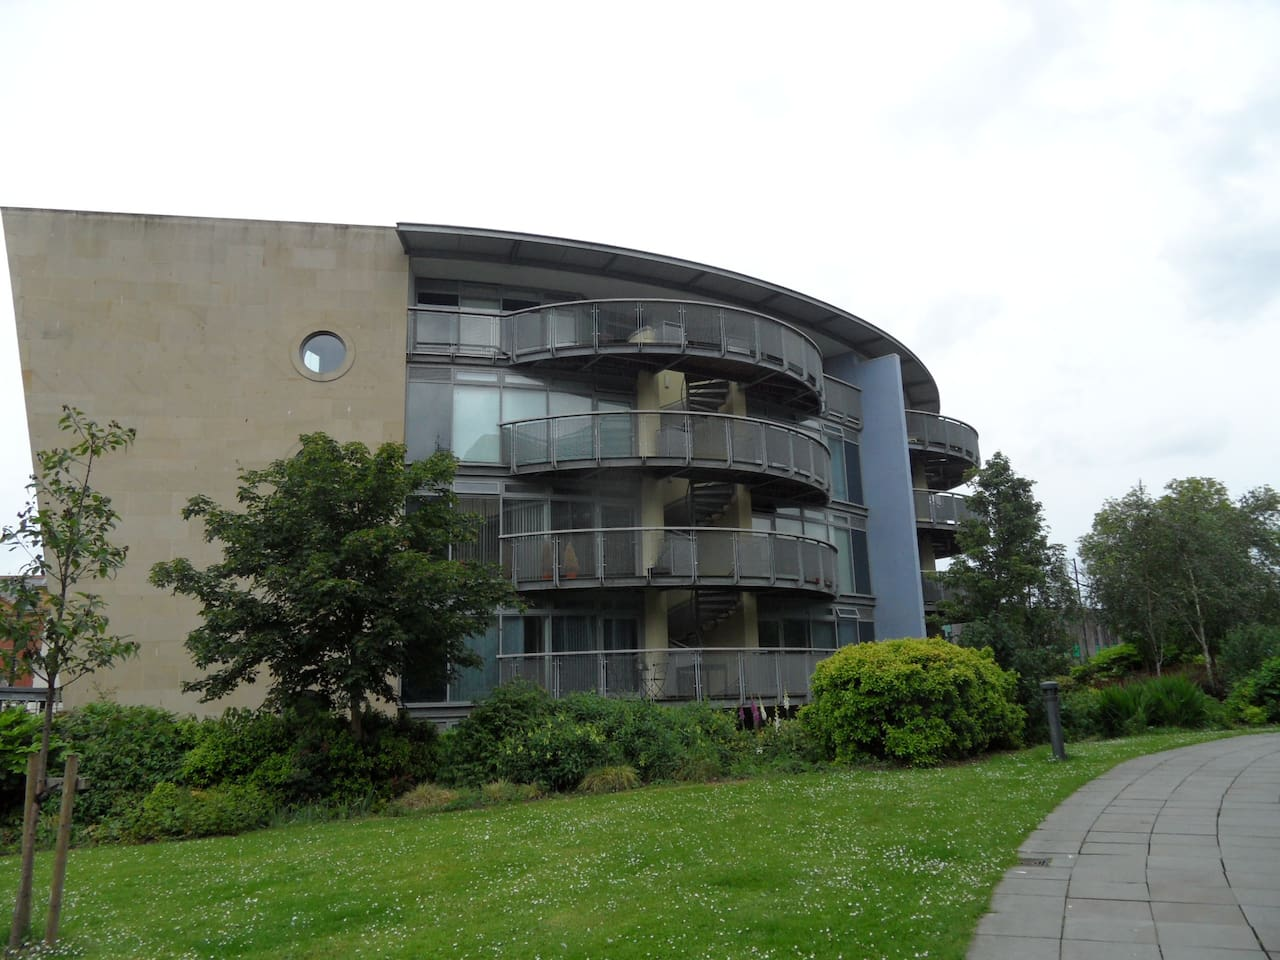 3 mowbray apartments flats for rent in sunderland united kingdom